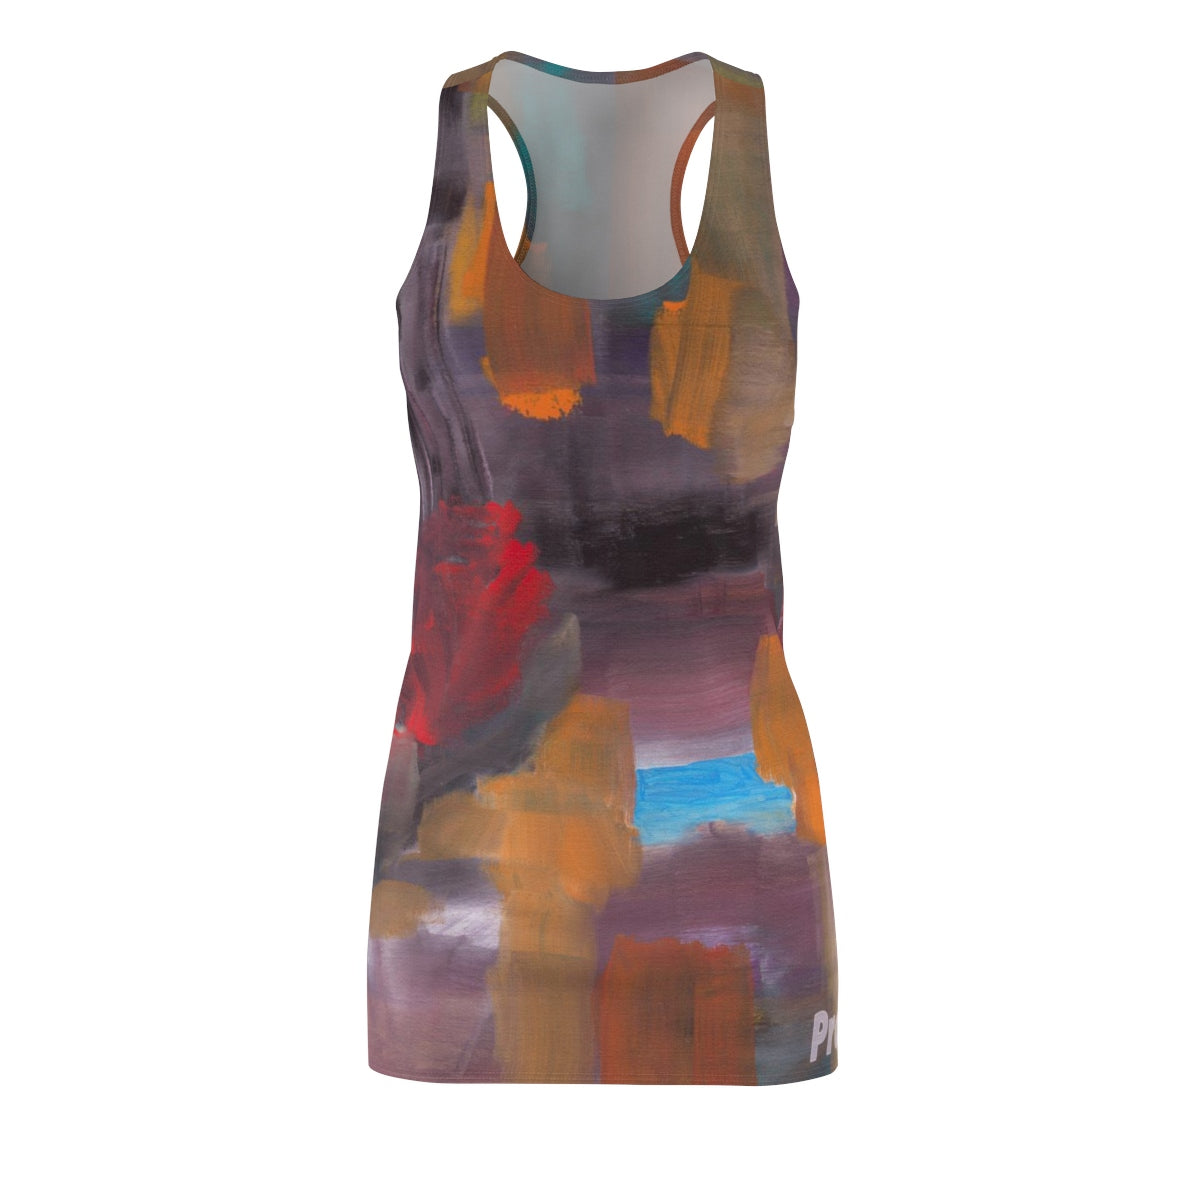 CAVE VIEW  Women's Racer Back Dress  SIZES  SX - 2 XL